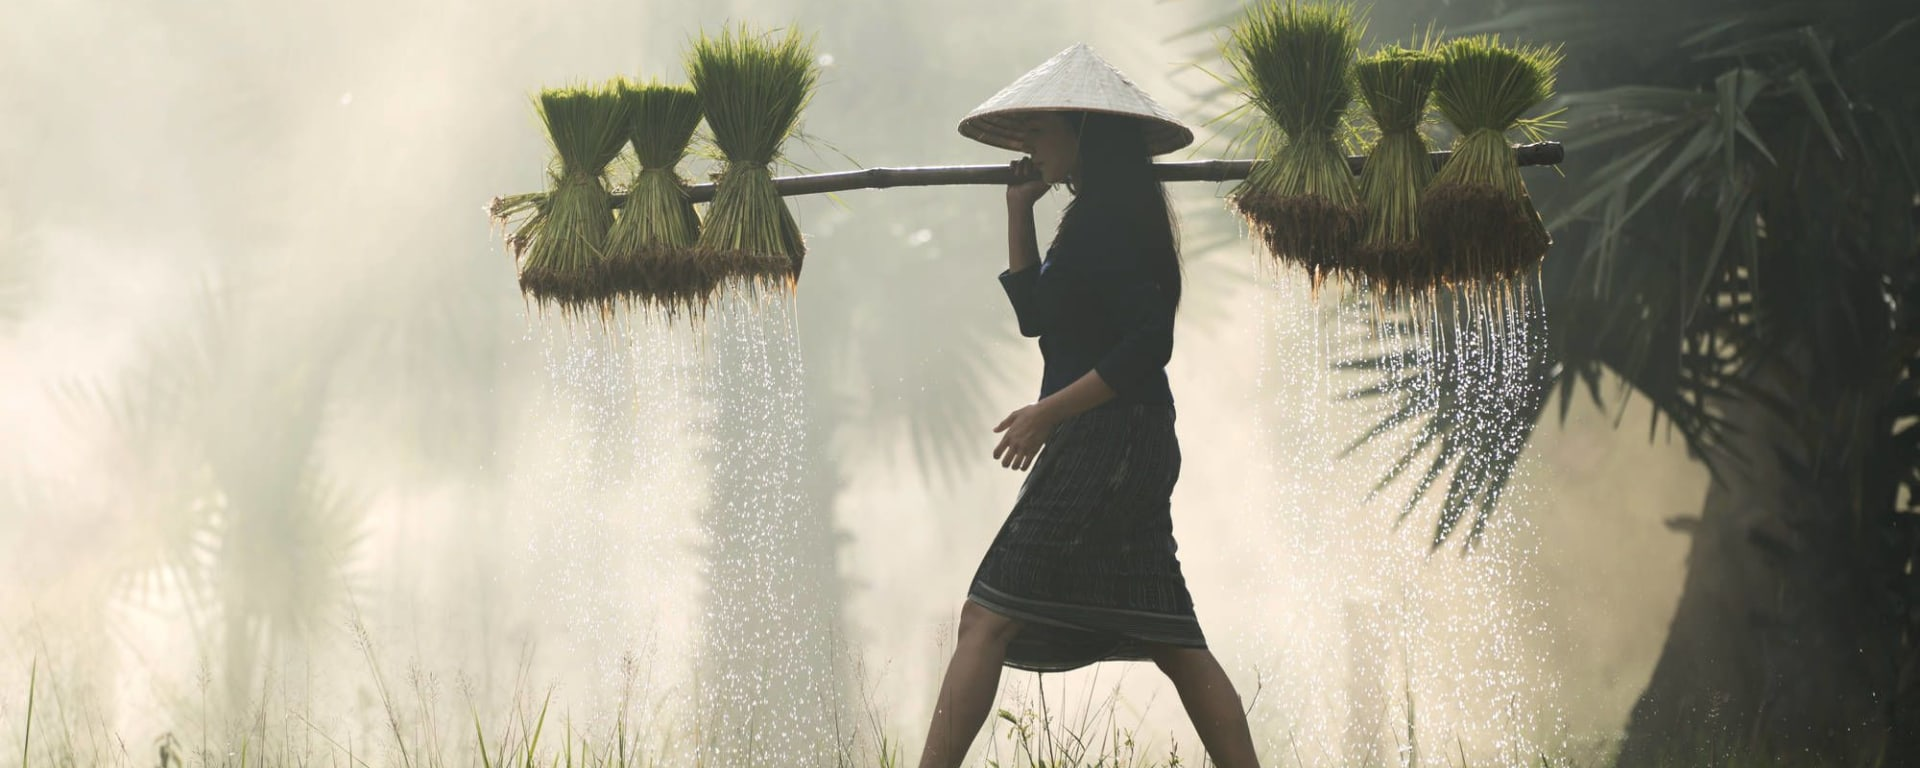 Découverte active du delta du Mékong de Saigon: Female Farmer with rice seedlings